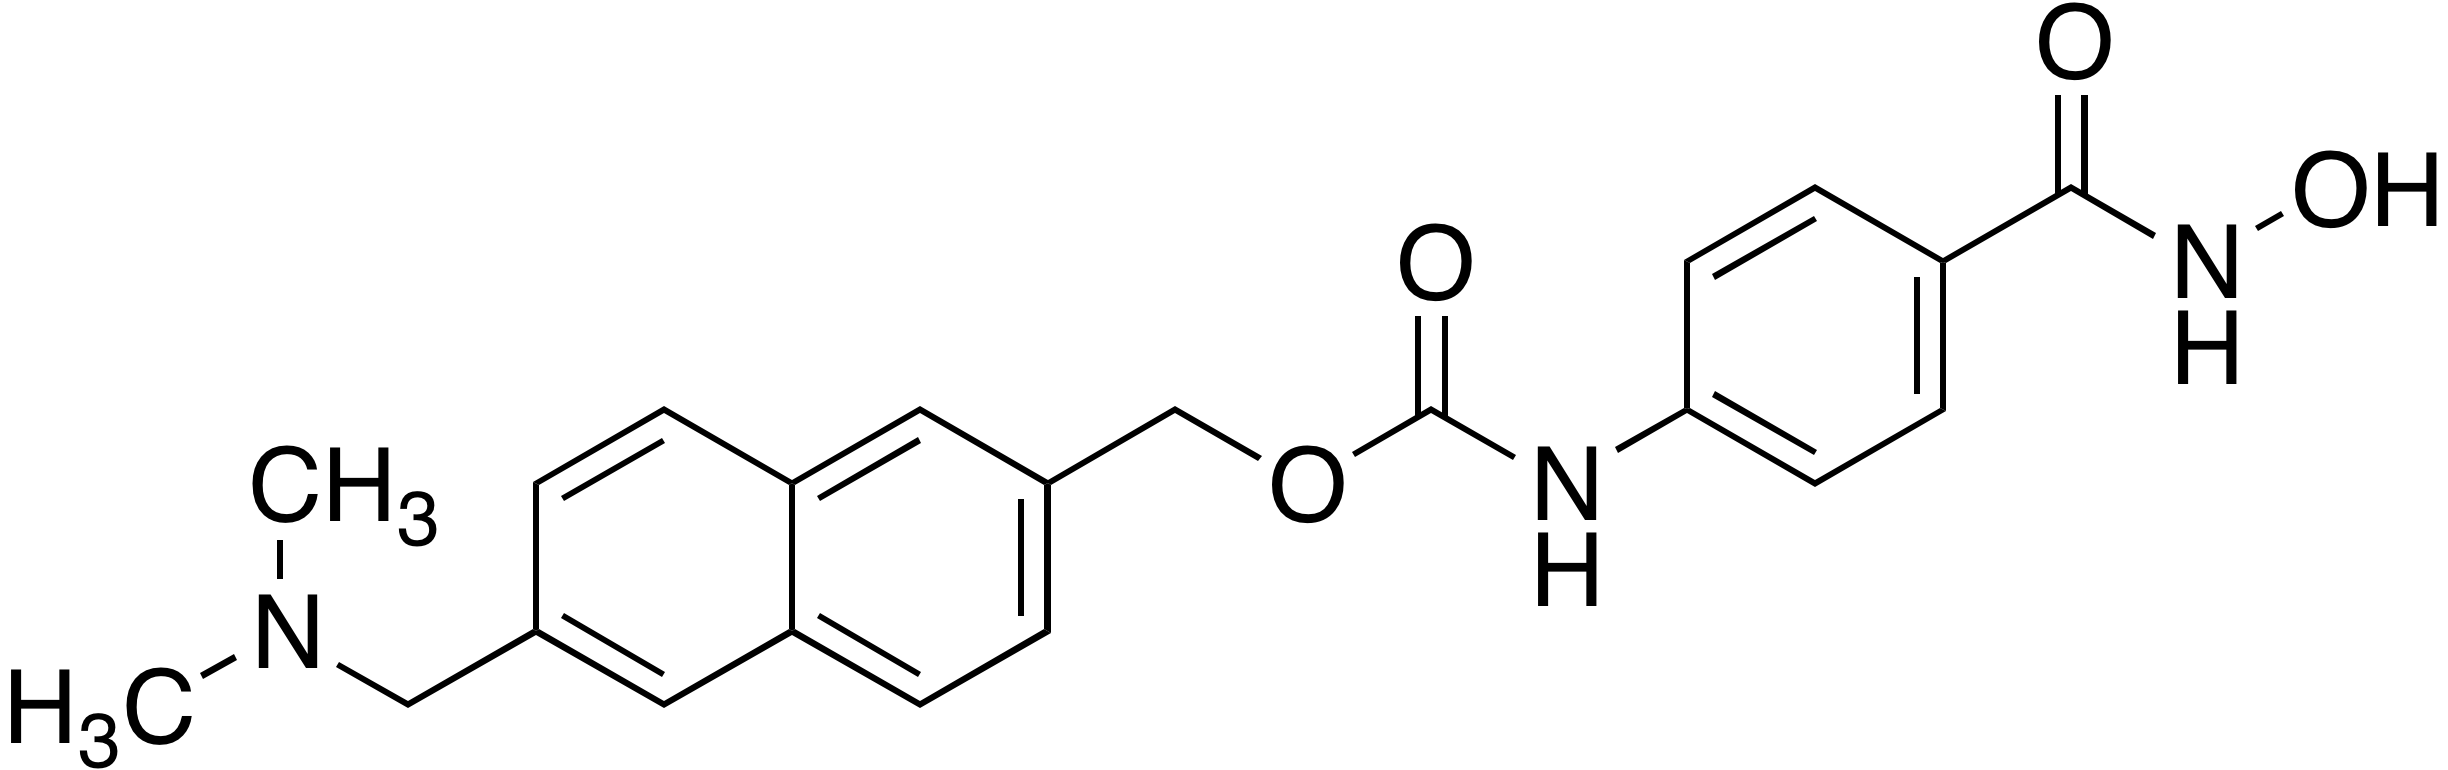 (6-((Dimethylamino)methyl)naphthalen-2-yl)methyl 4-(hydroxycarbamoyl)phenylcarbamate